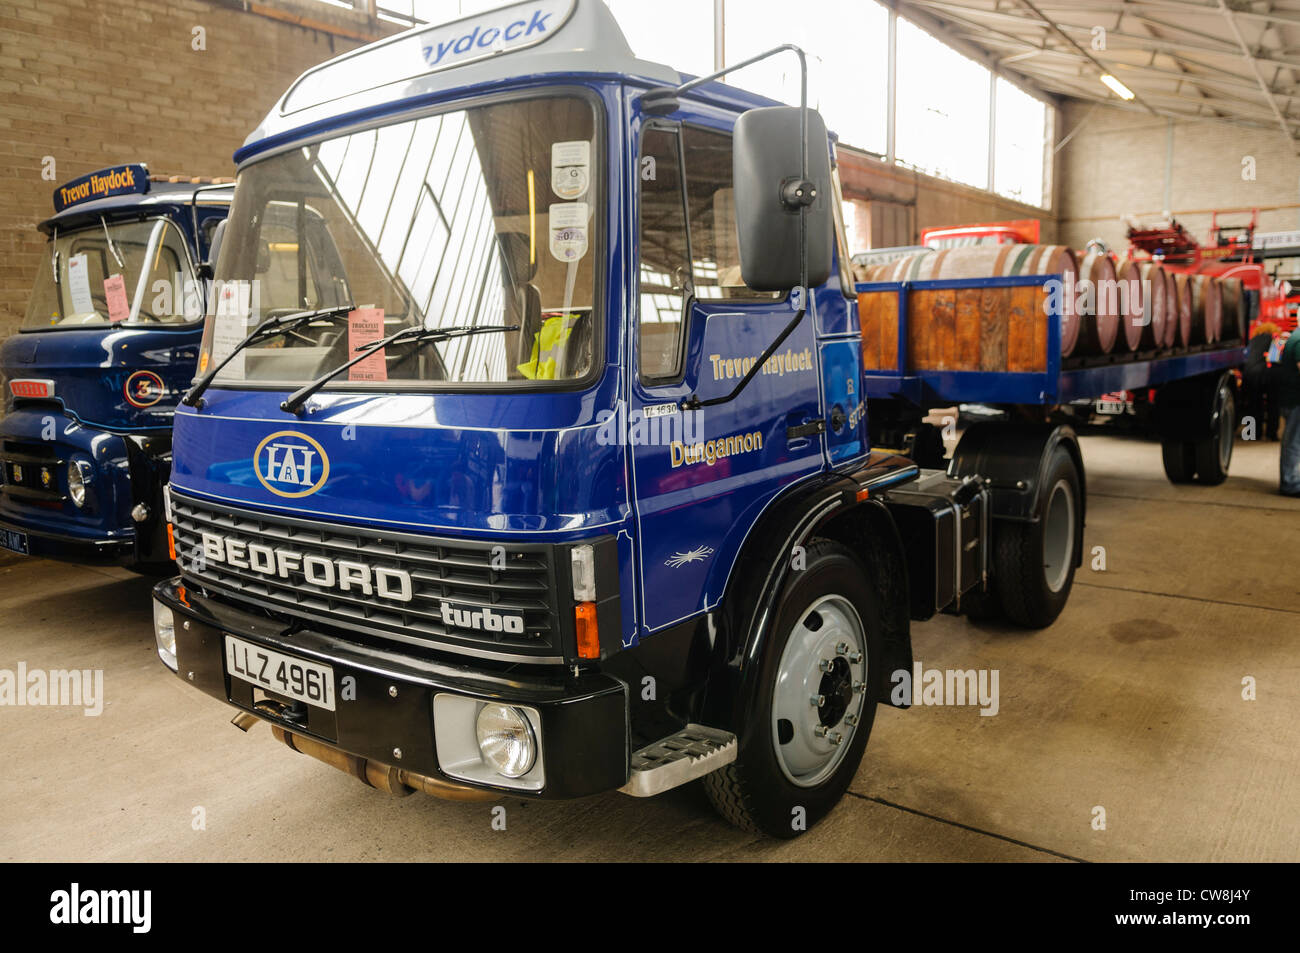 Classic Bedford flat bed lorry used to transport whiskey barrels from Bushmills Distillery - Stock Image